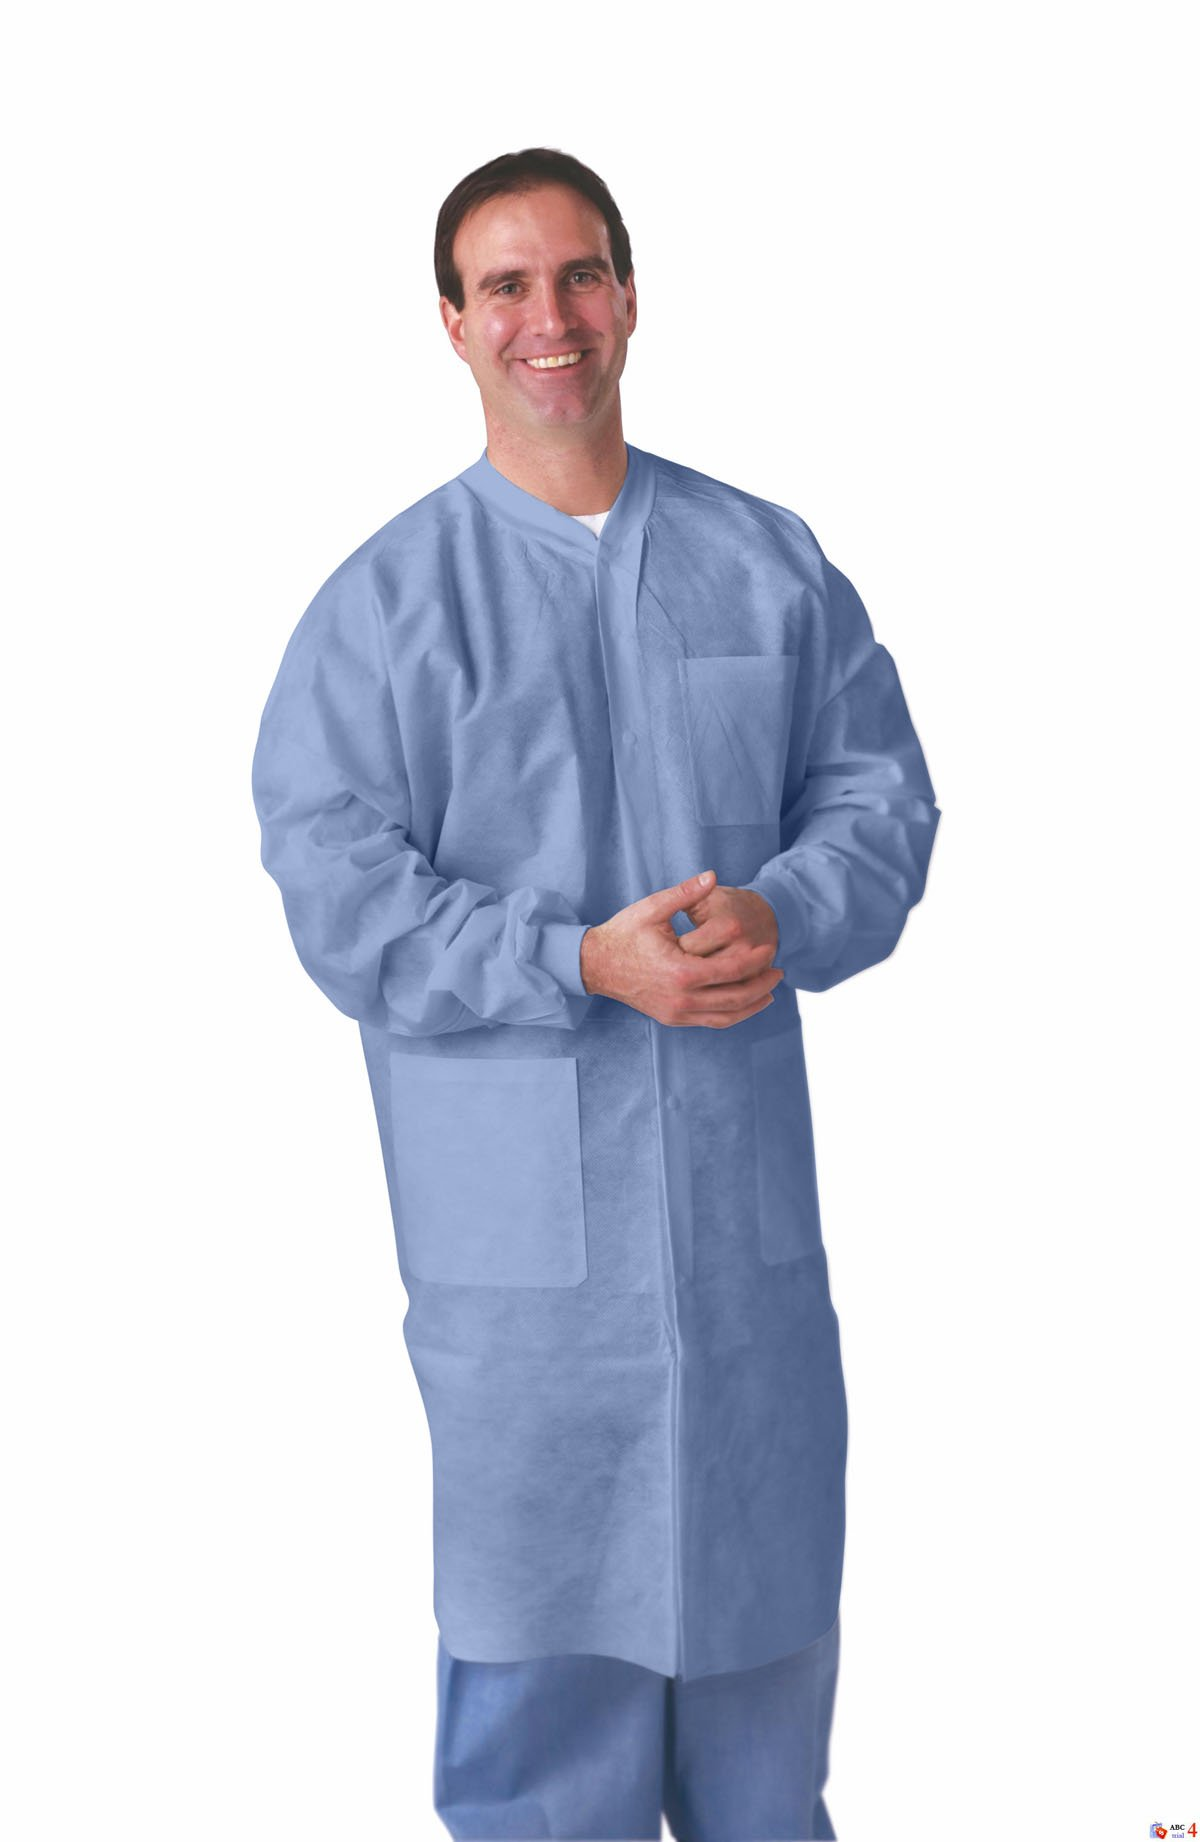 Medline NONSW600XL Knit Cuff/Knit Collar Multi-Layer Lab Coat, X-Large, Blue (Case of 30)